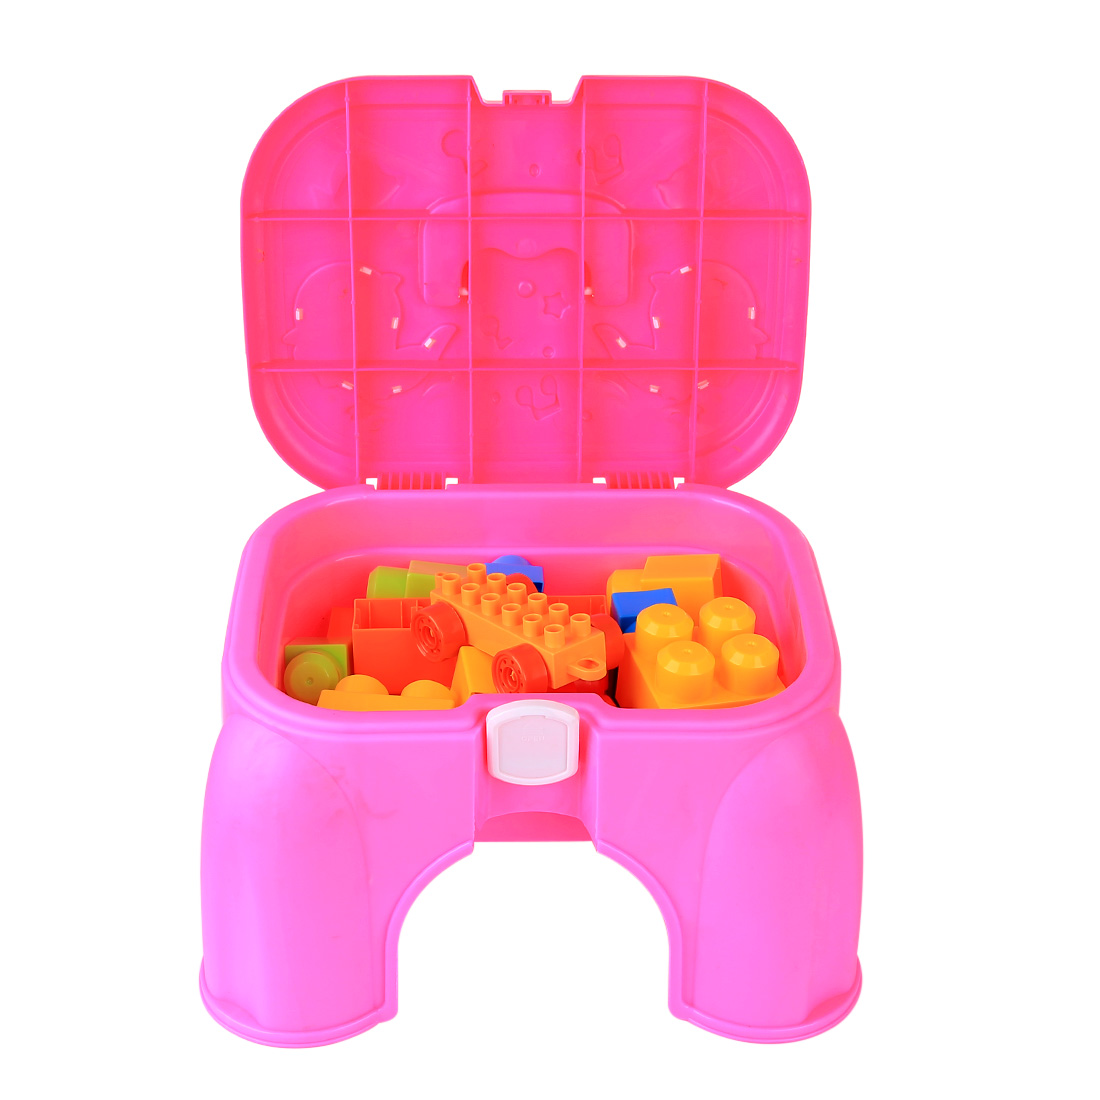 20Pcs/set Outdoor Summer Beach Sand Water Toys Storage Chair Playset for Kids - 1118A(Parts Random Color)